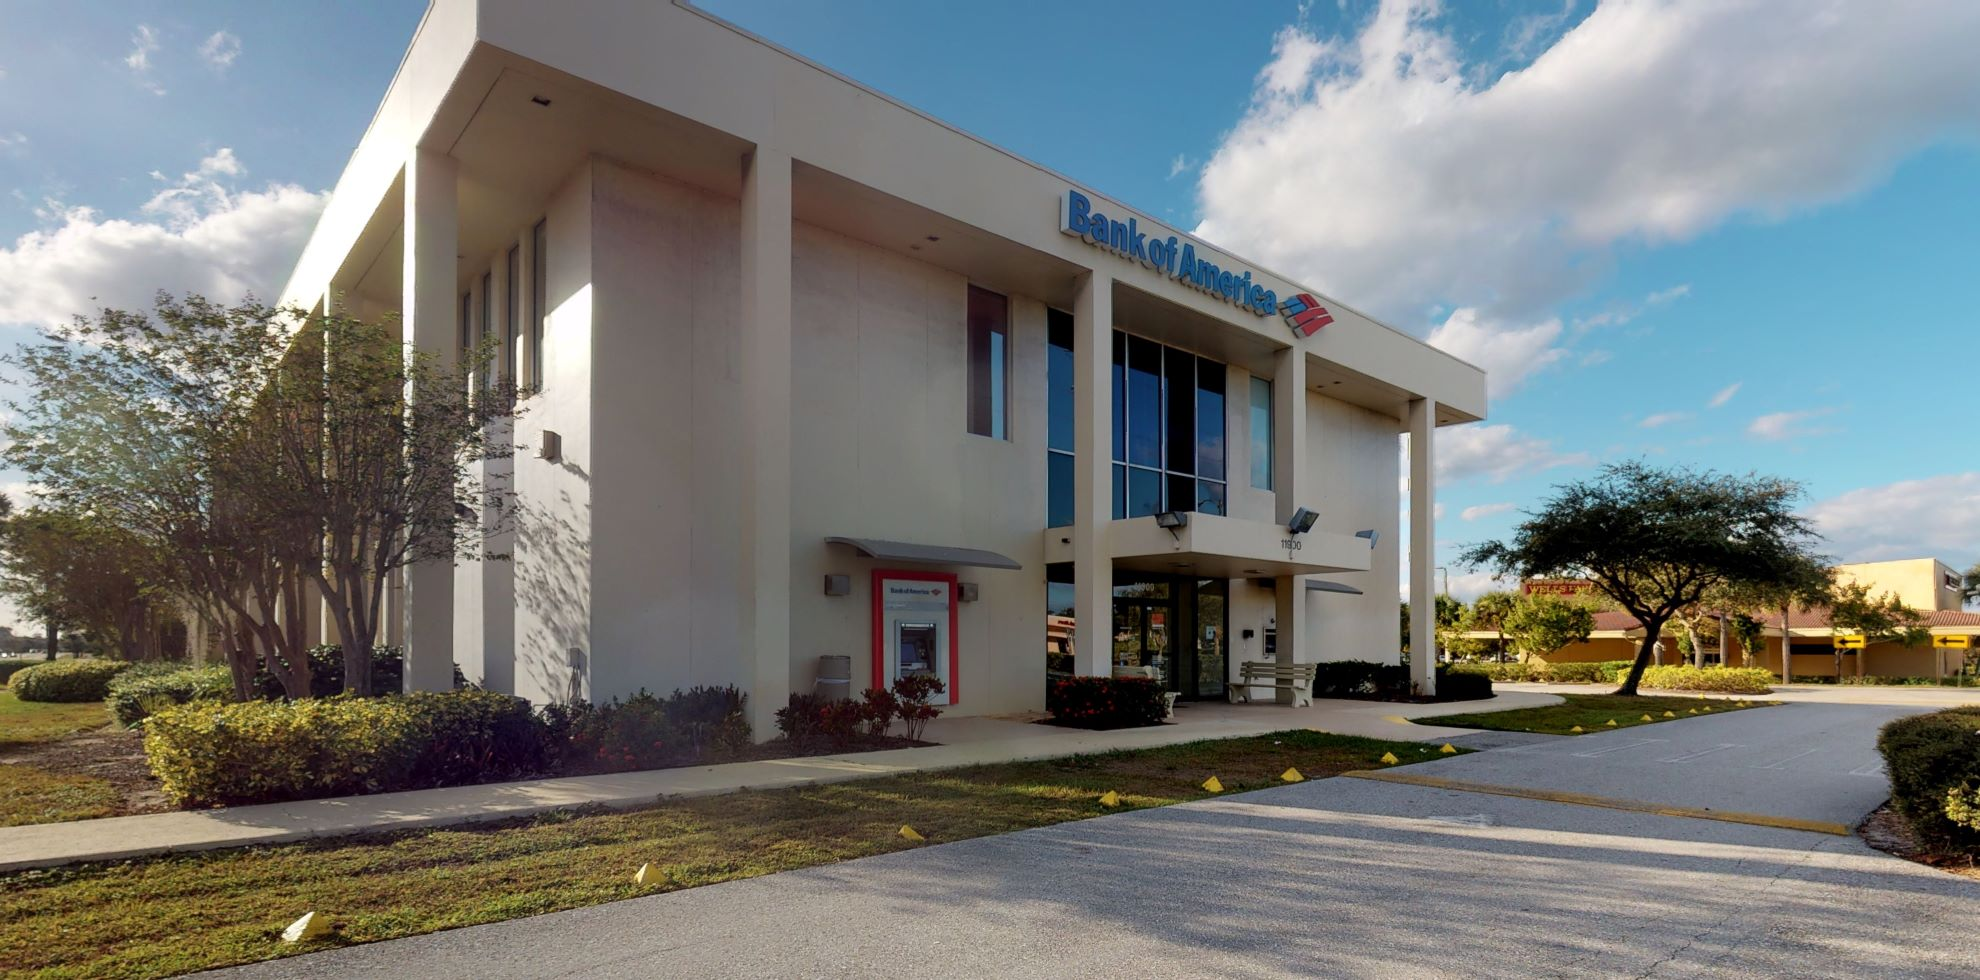 Bank of America financial center with drive-thru ATM   11900 SE Federal Hwy, Hobe Sound, FL 33455